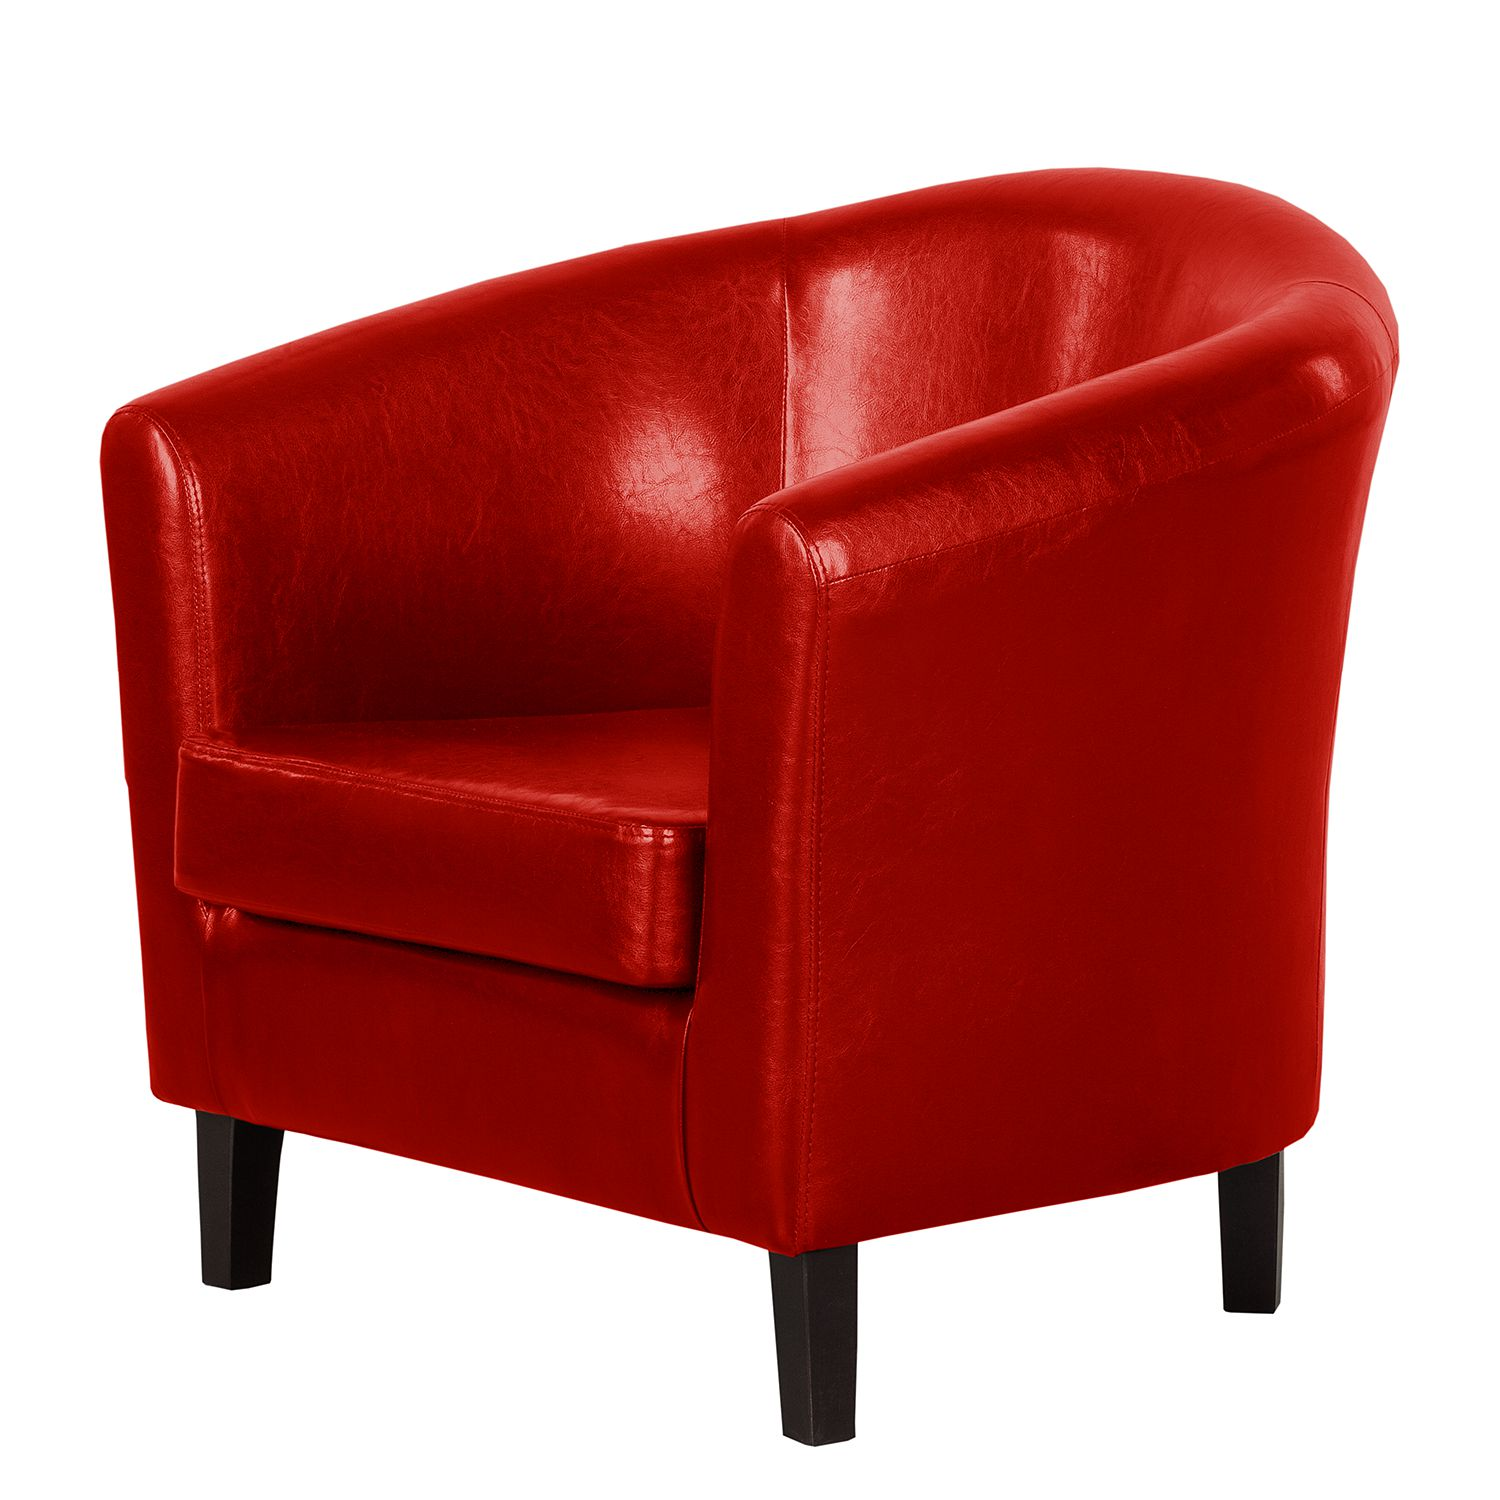 Fauteuil Caledon - Imitation cuir - Rouge, Red Living